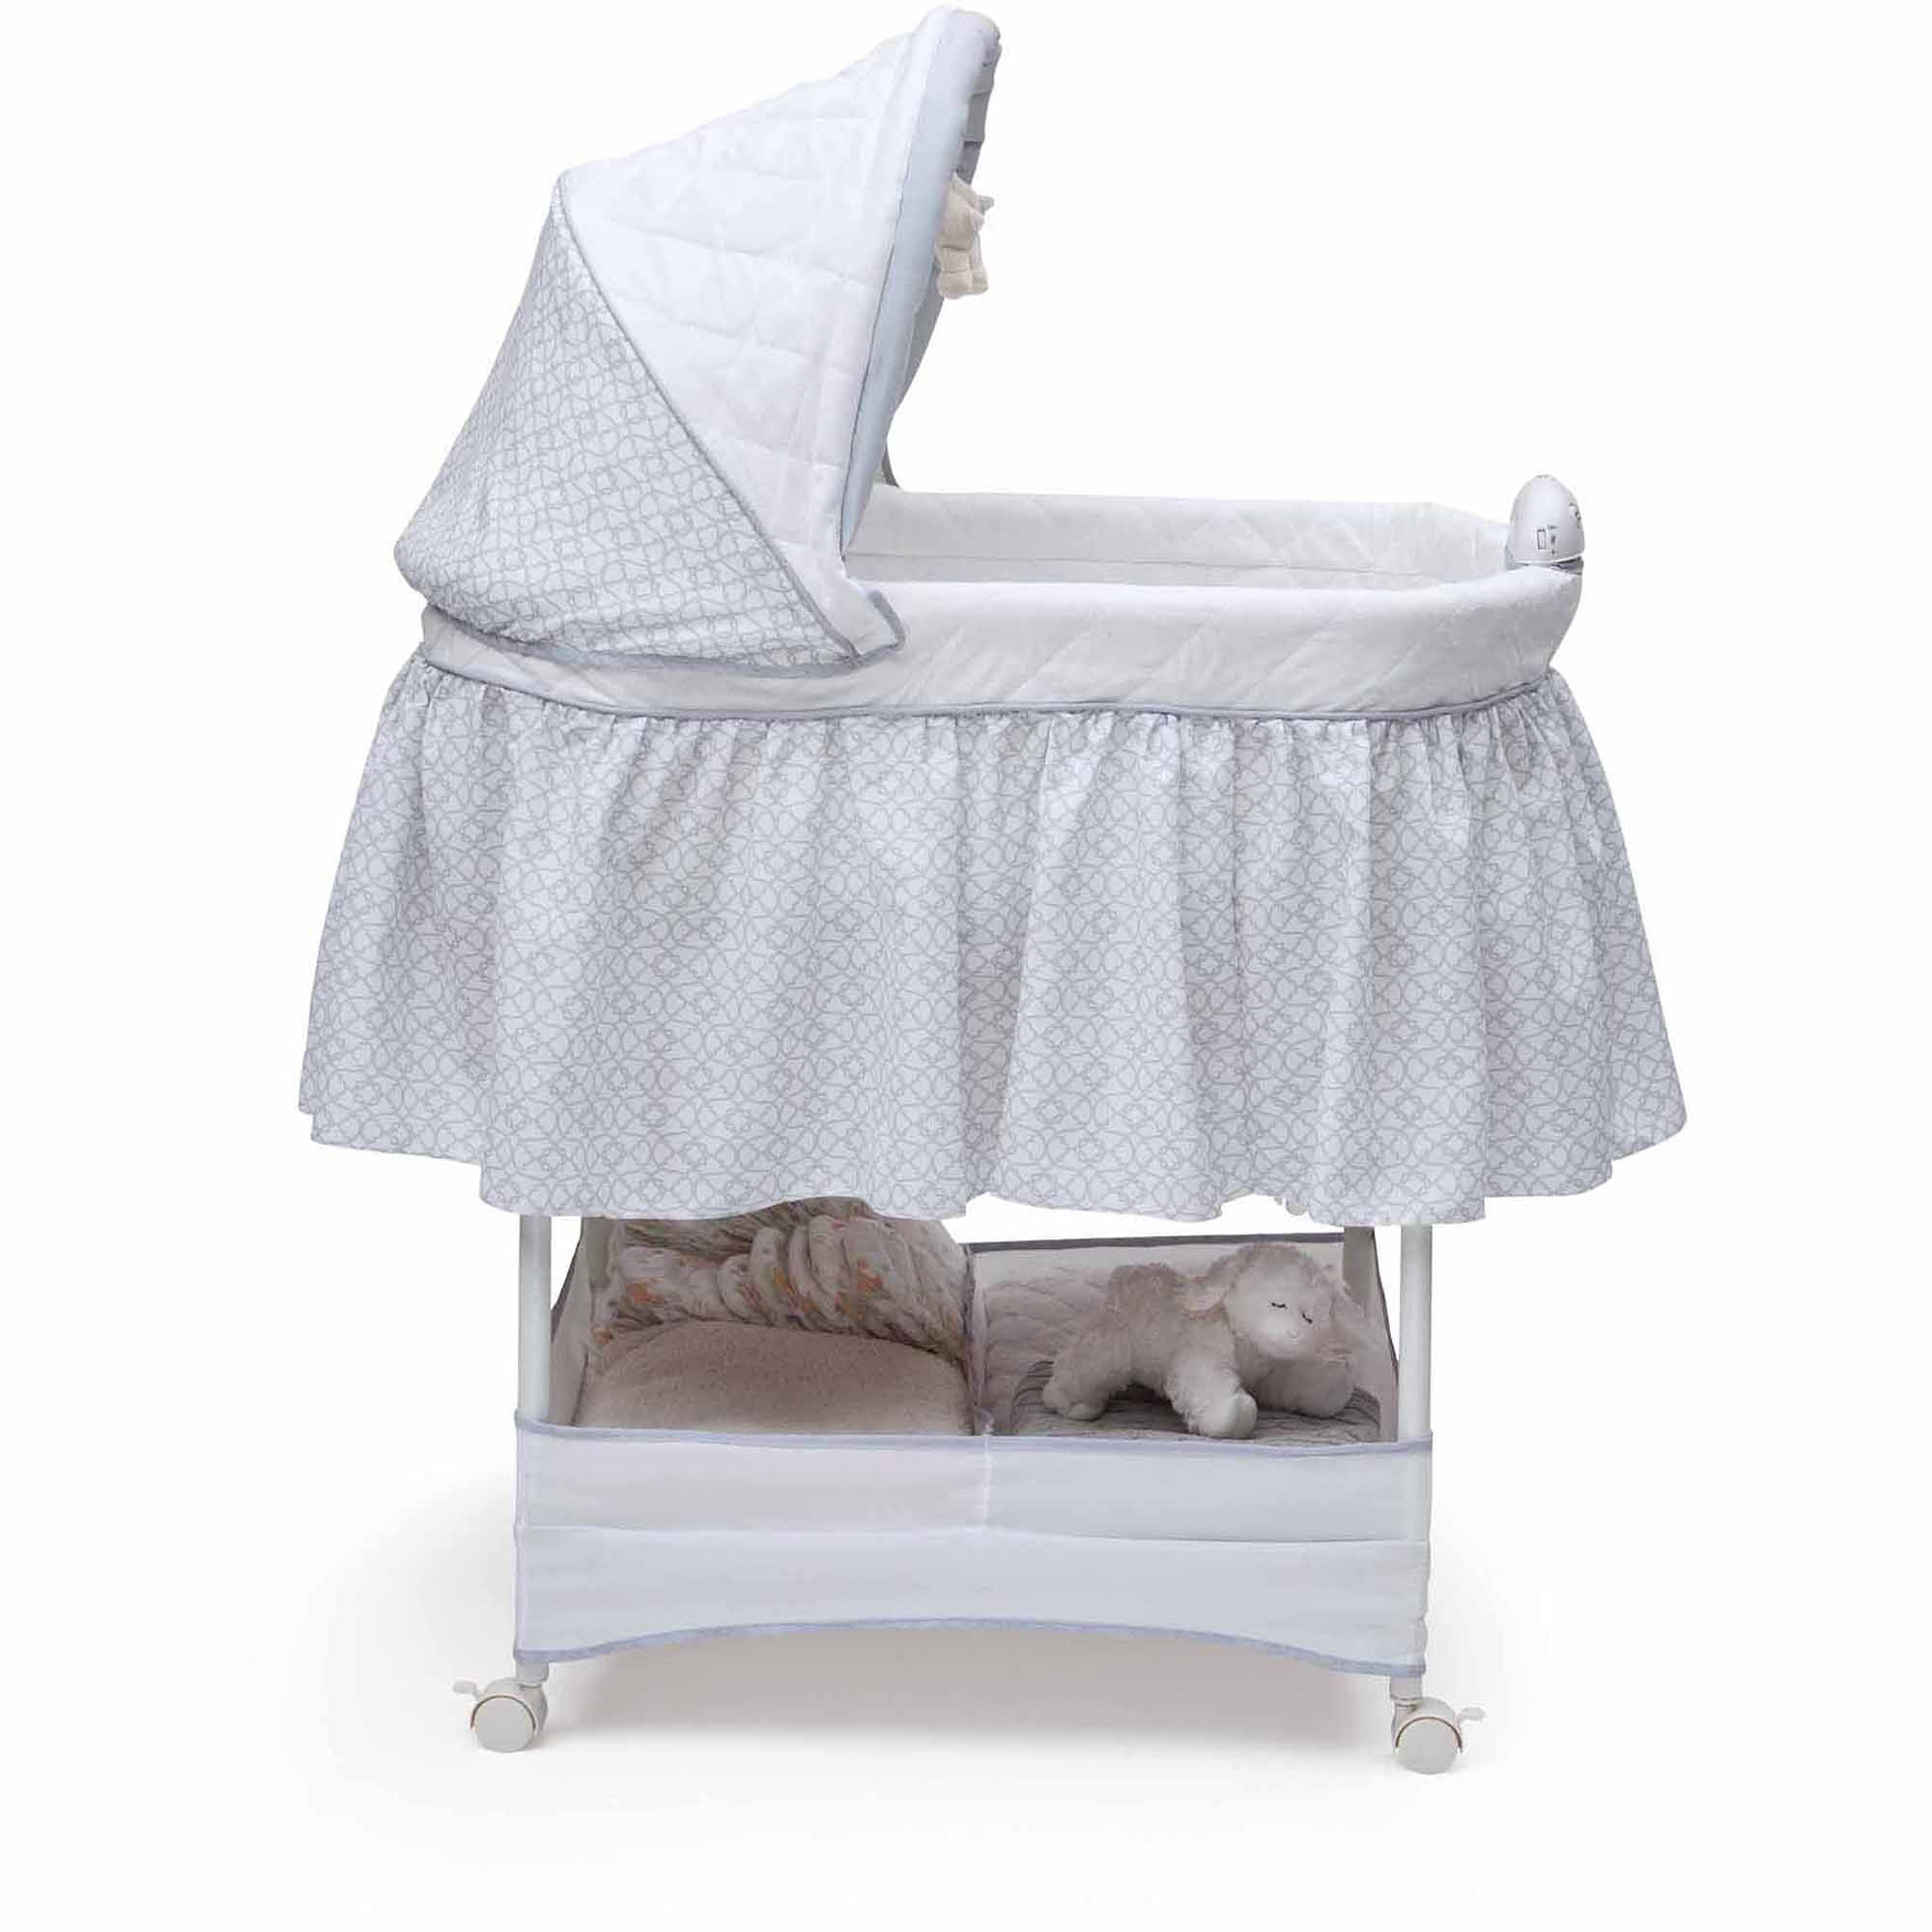 Beautiful Beginings A-Z Soft Baby Blanket for Prams Travel Cots ect Cribs